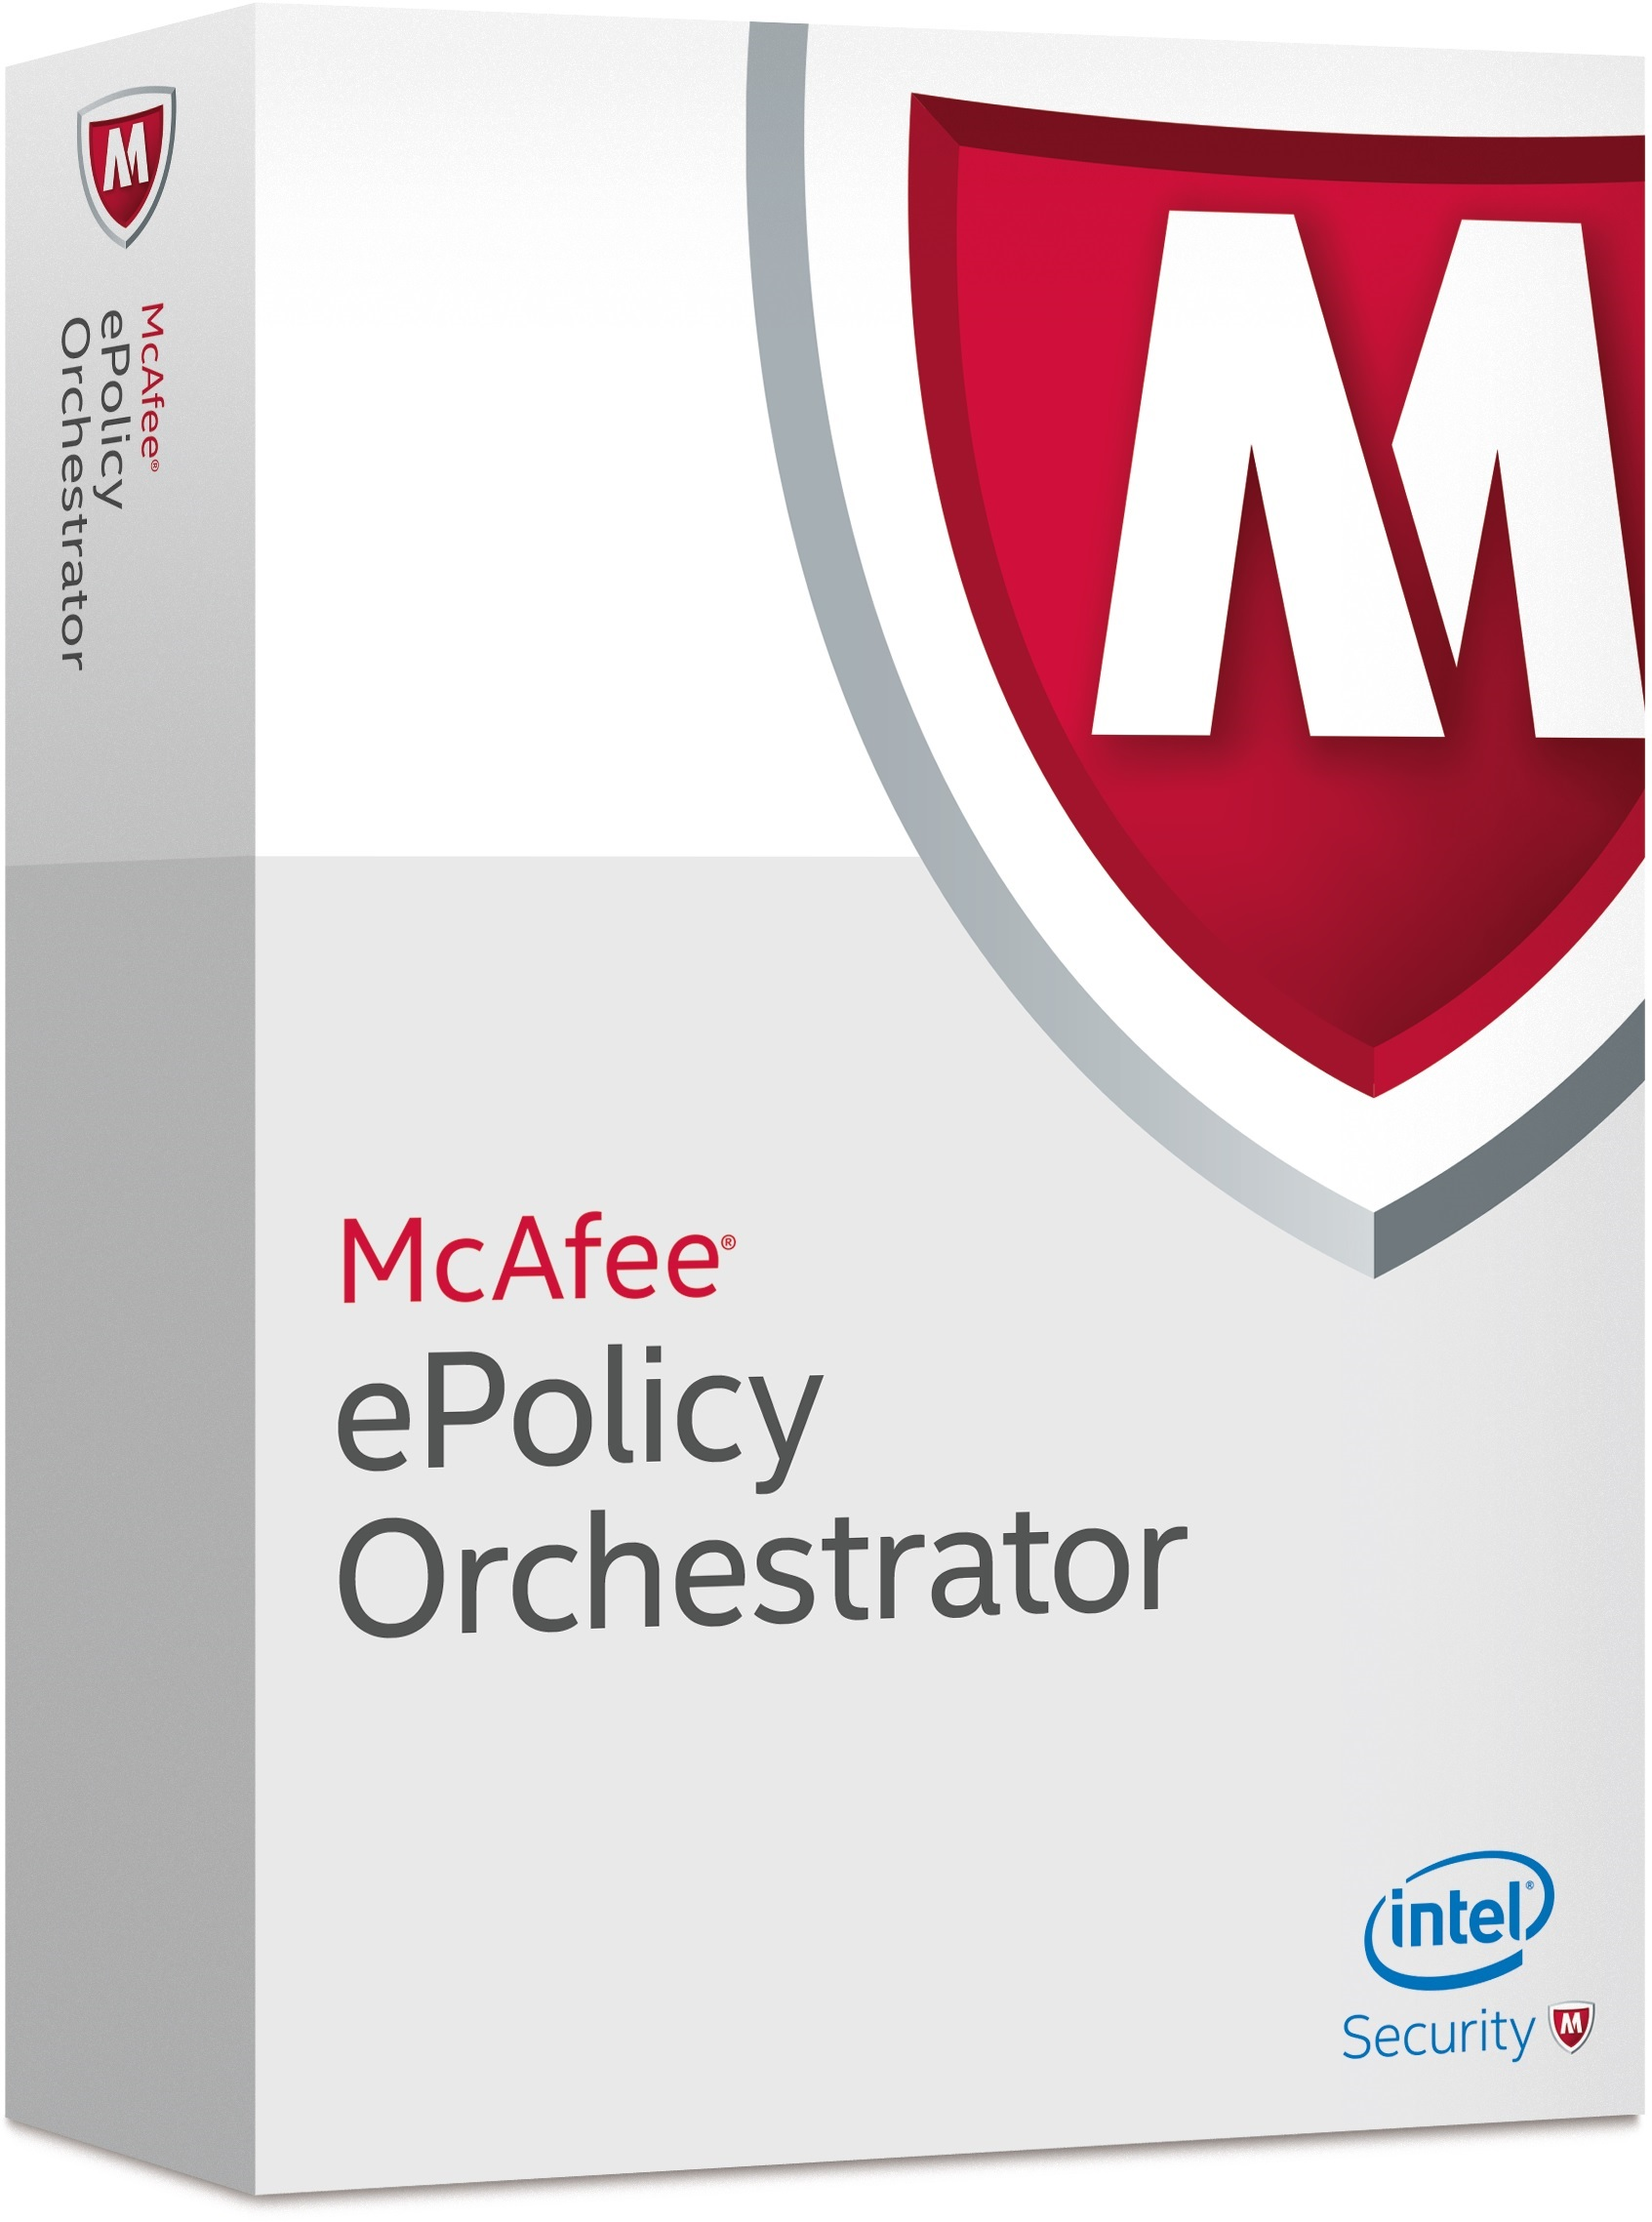 McAfee ePolicy Orchestrator inkl. 1 Jahr Gold Support Win, Multilingual (Lizenzstaffel 101-250 User) (EPOCDE-AA-DA)